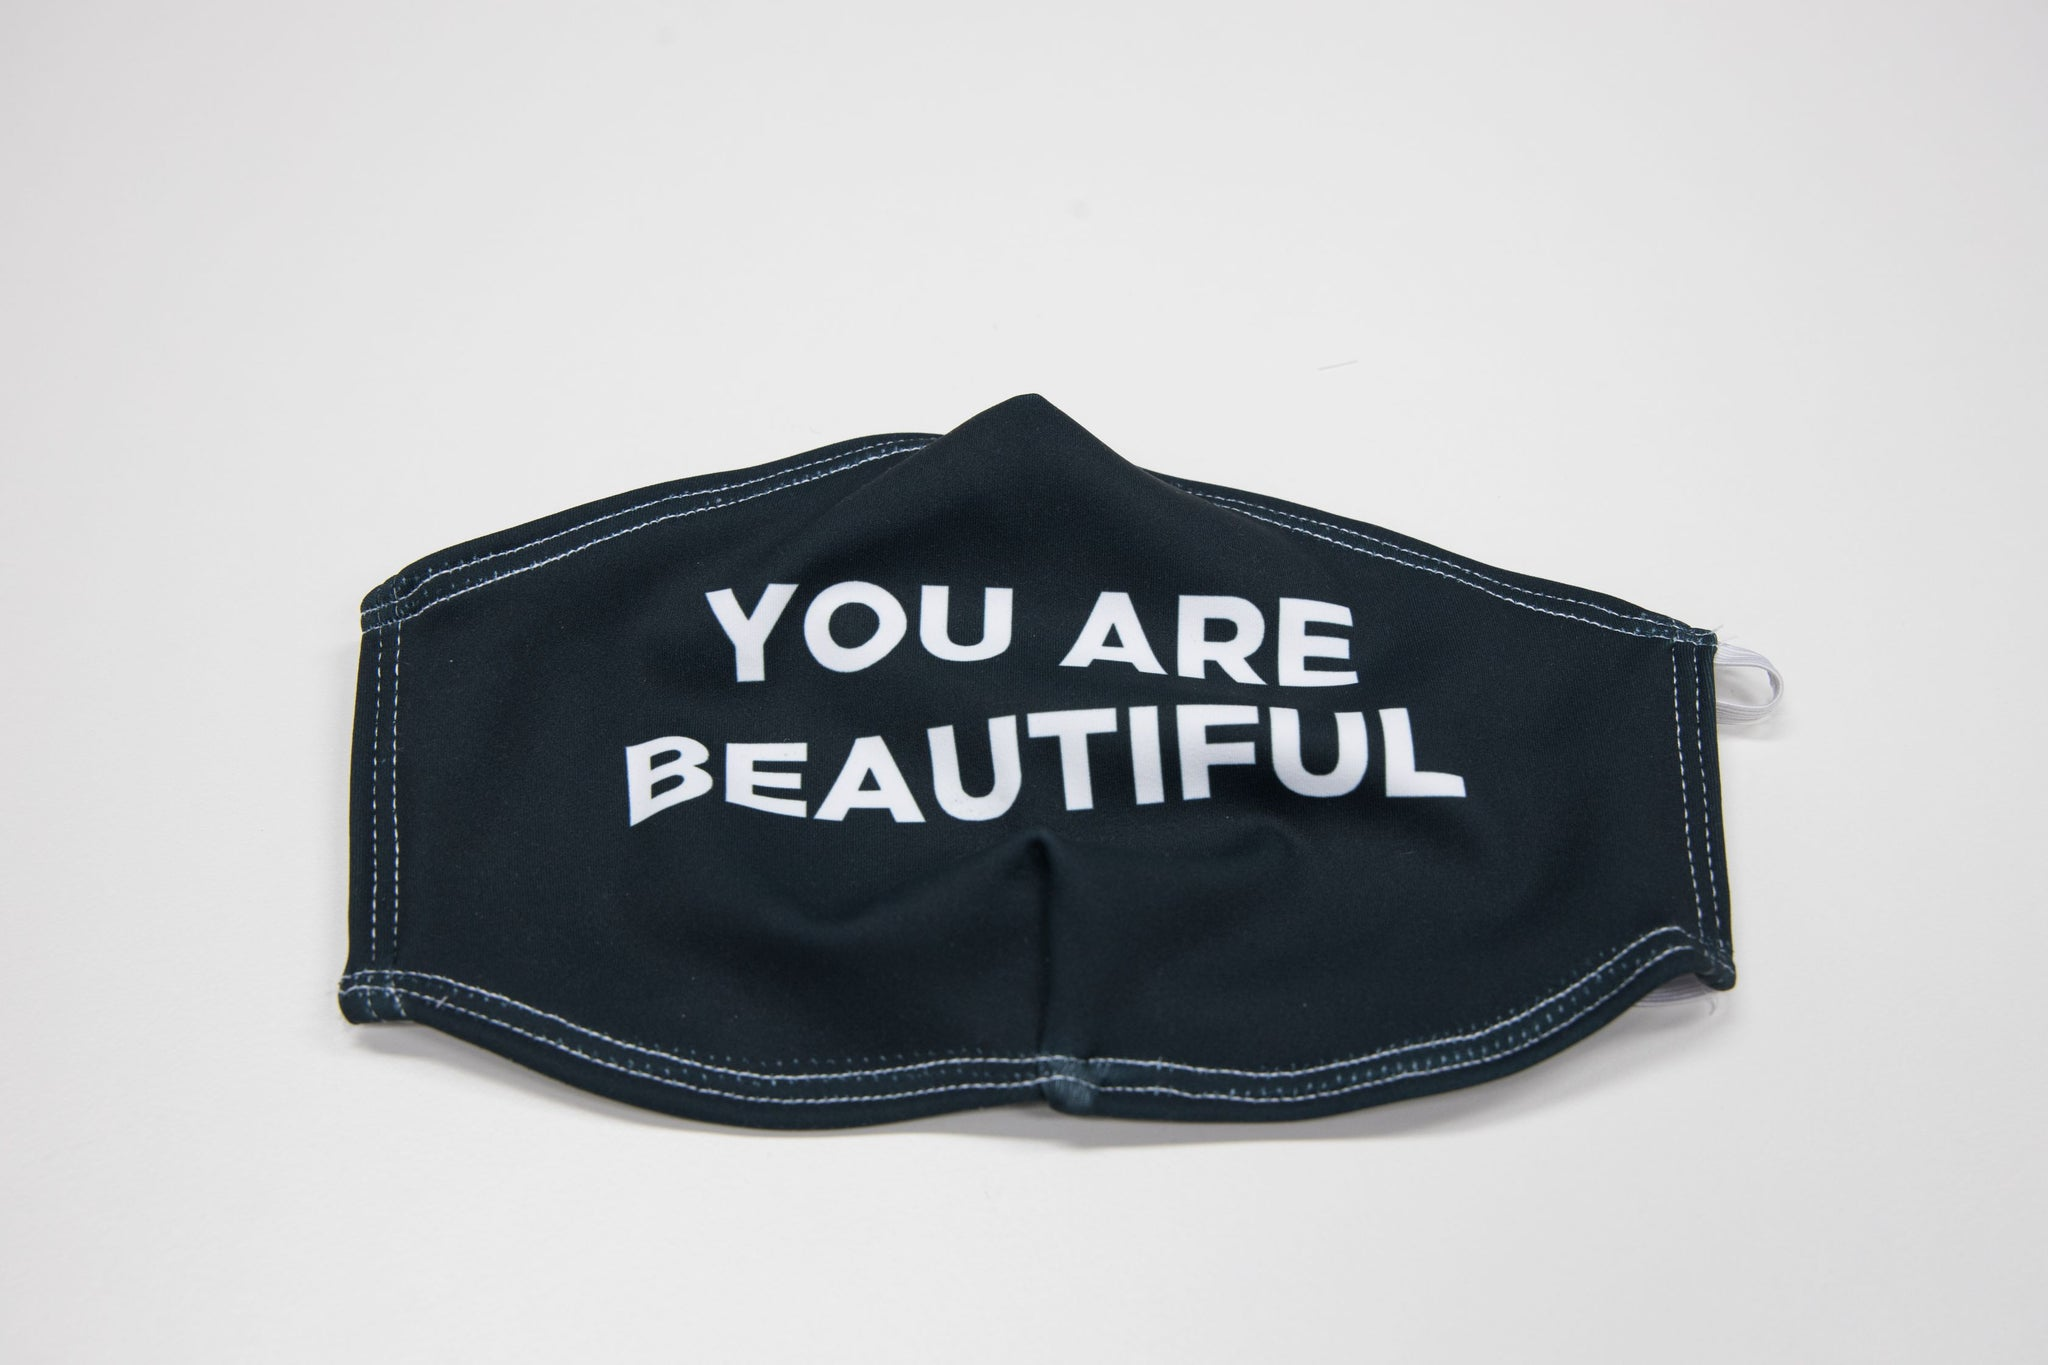 You Are Beautiful - Mask